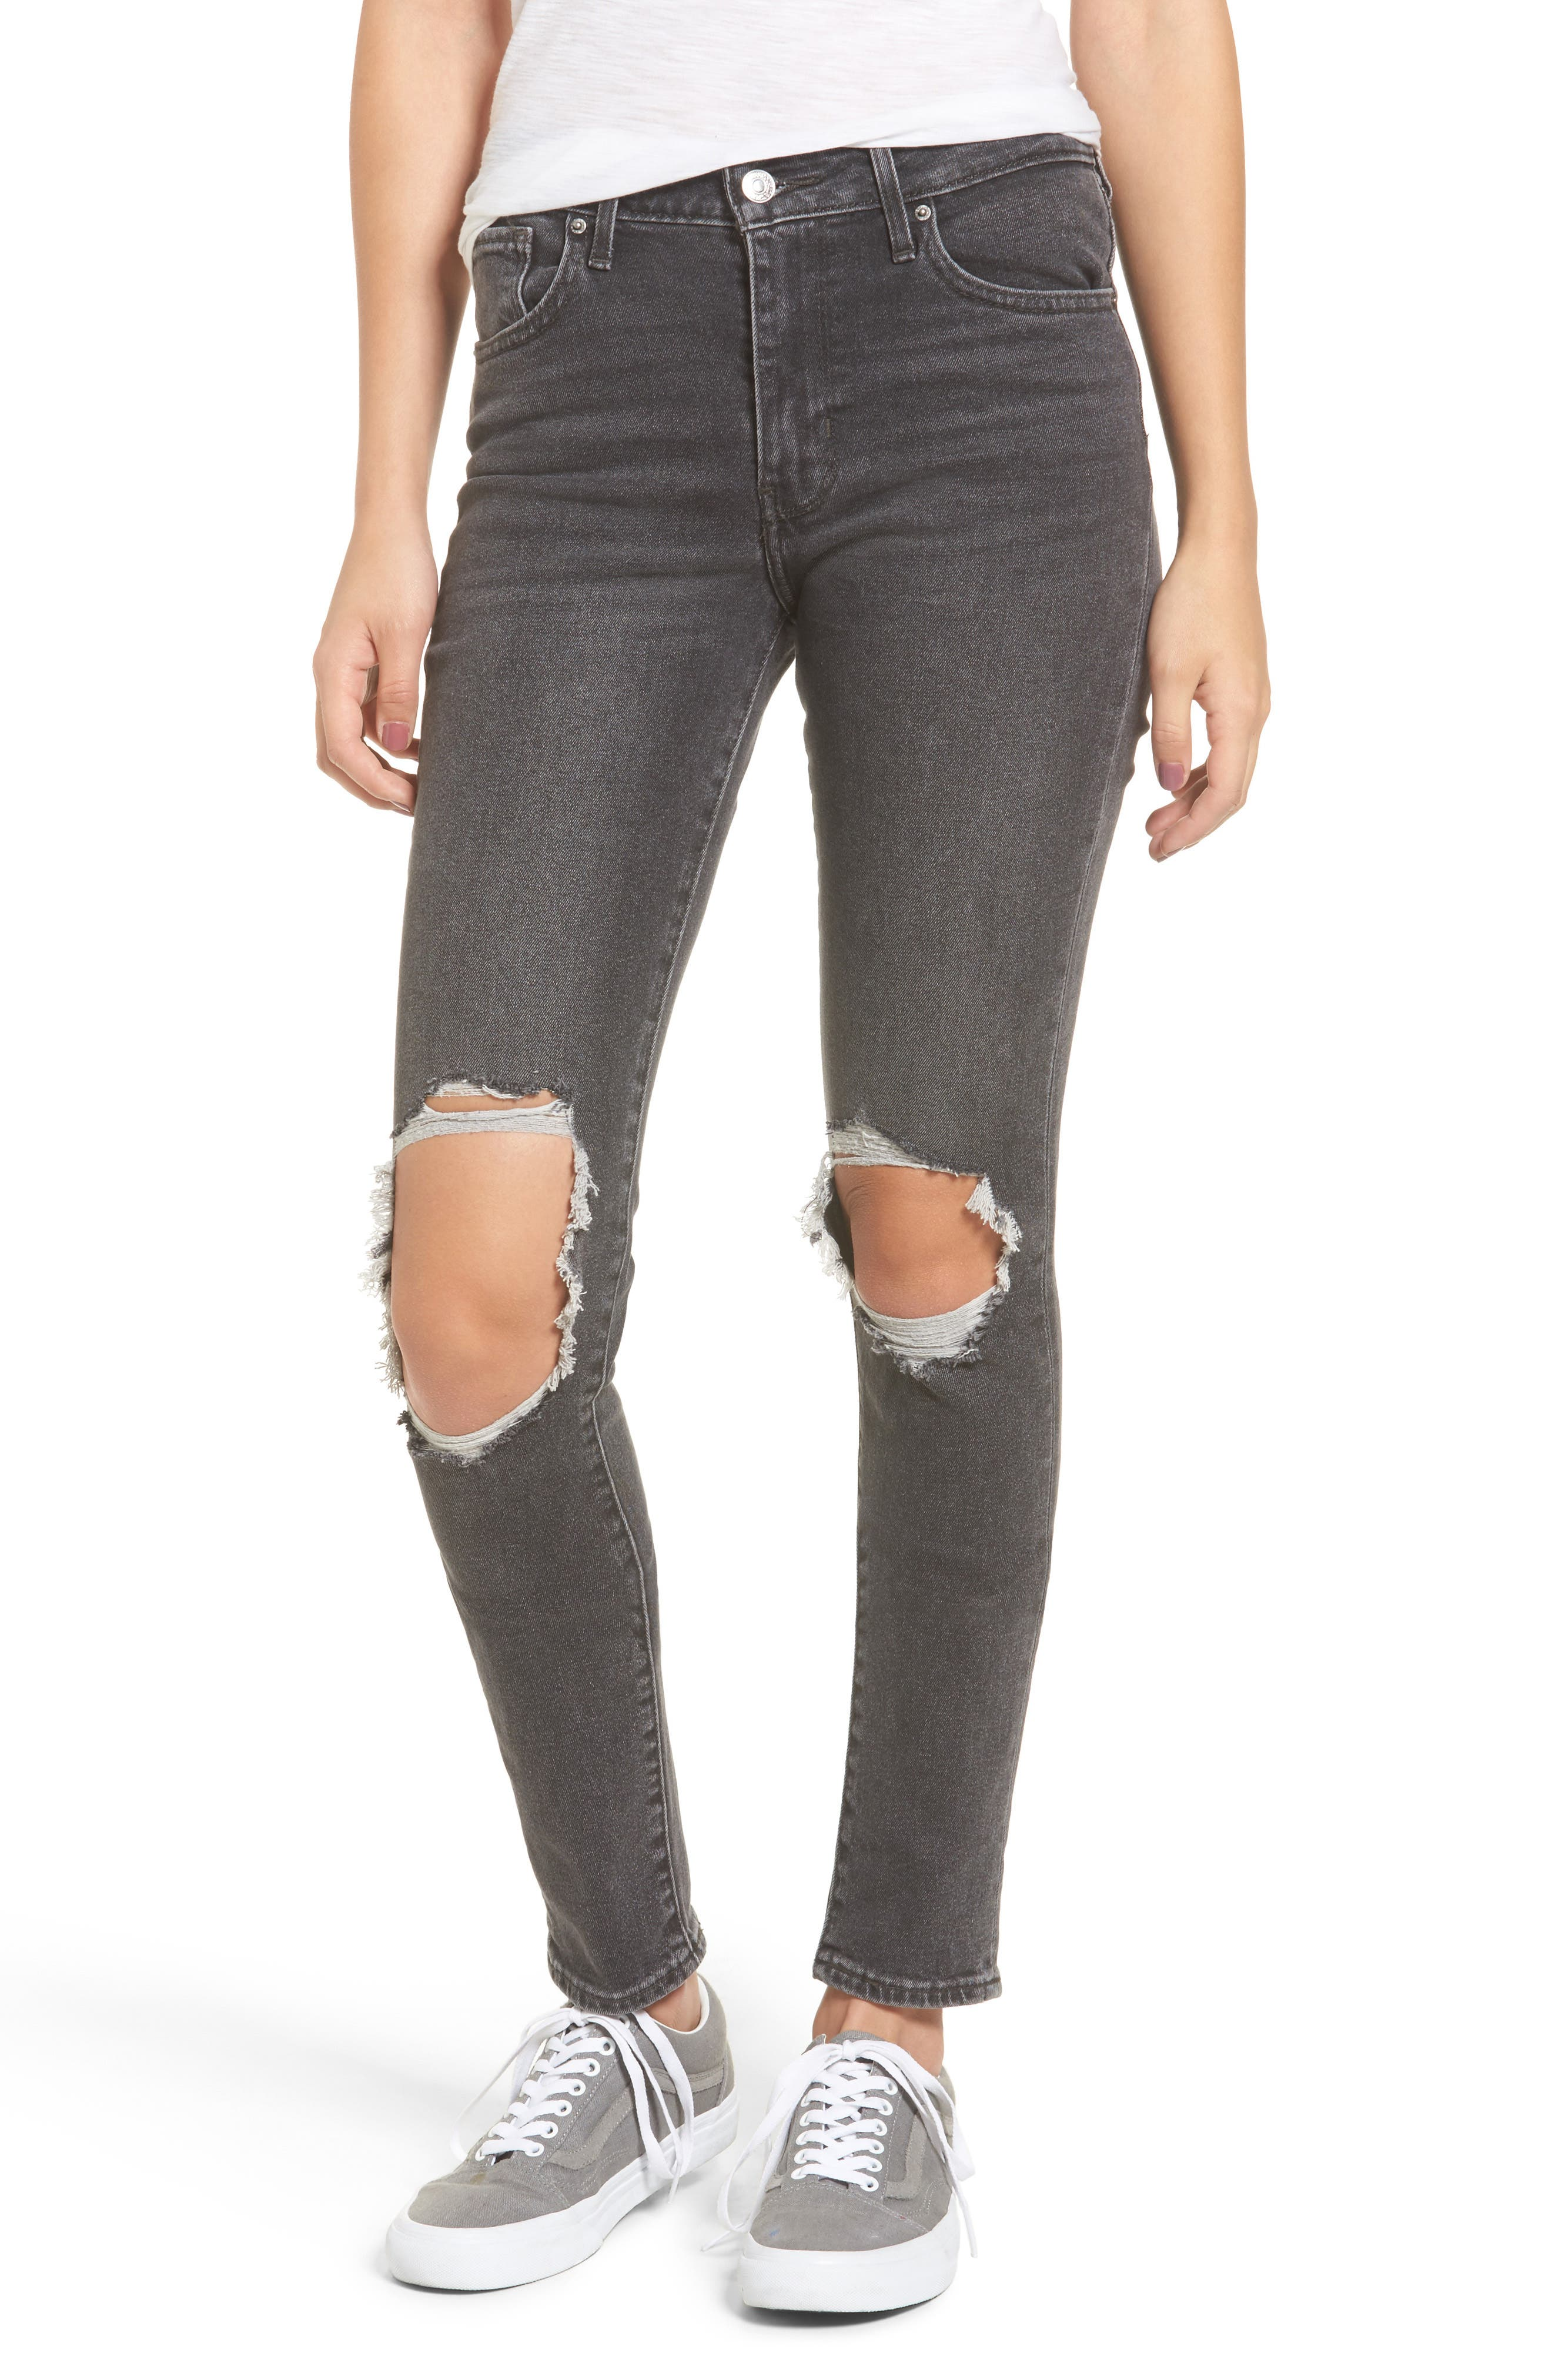 Alternate Image 1 Selected - Levi's® 721 Ripped High Waist Skinny Jeans (Rugged Black)